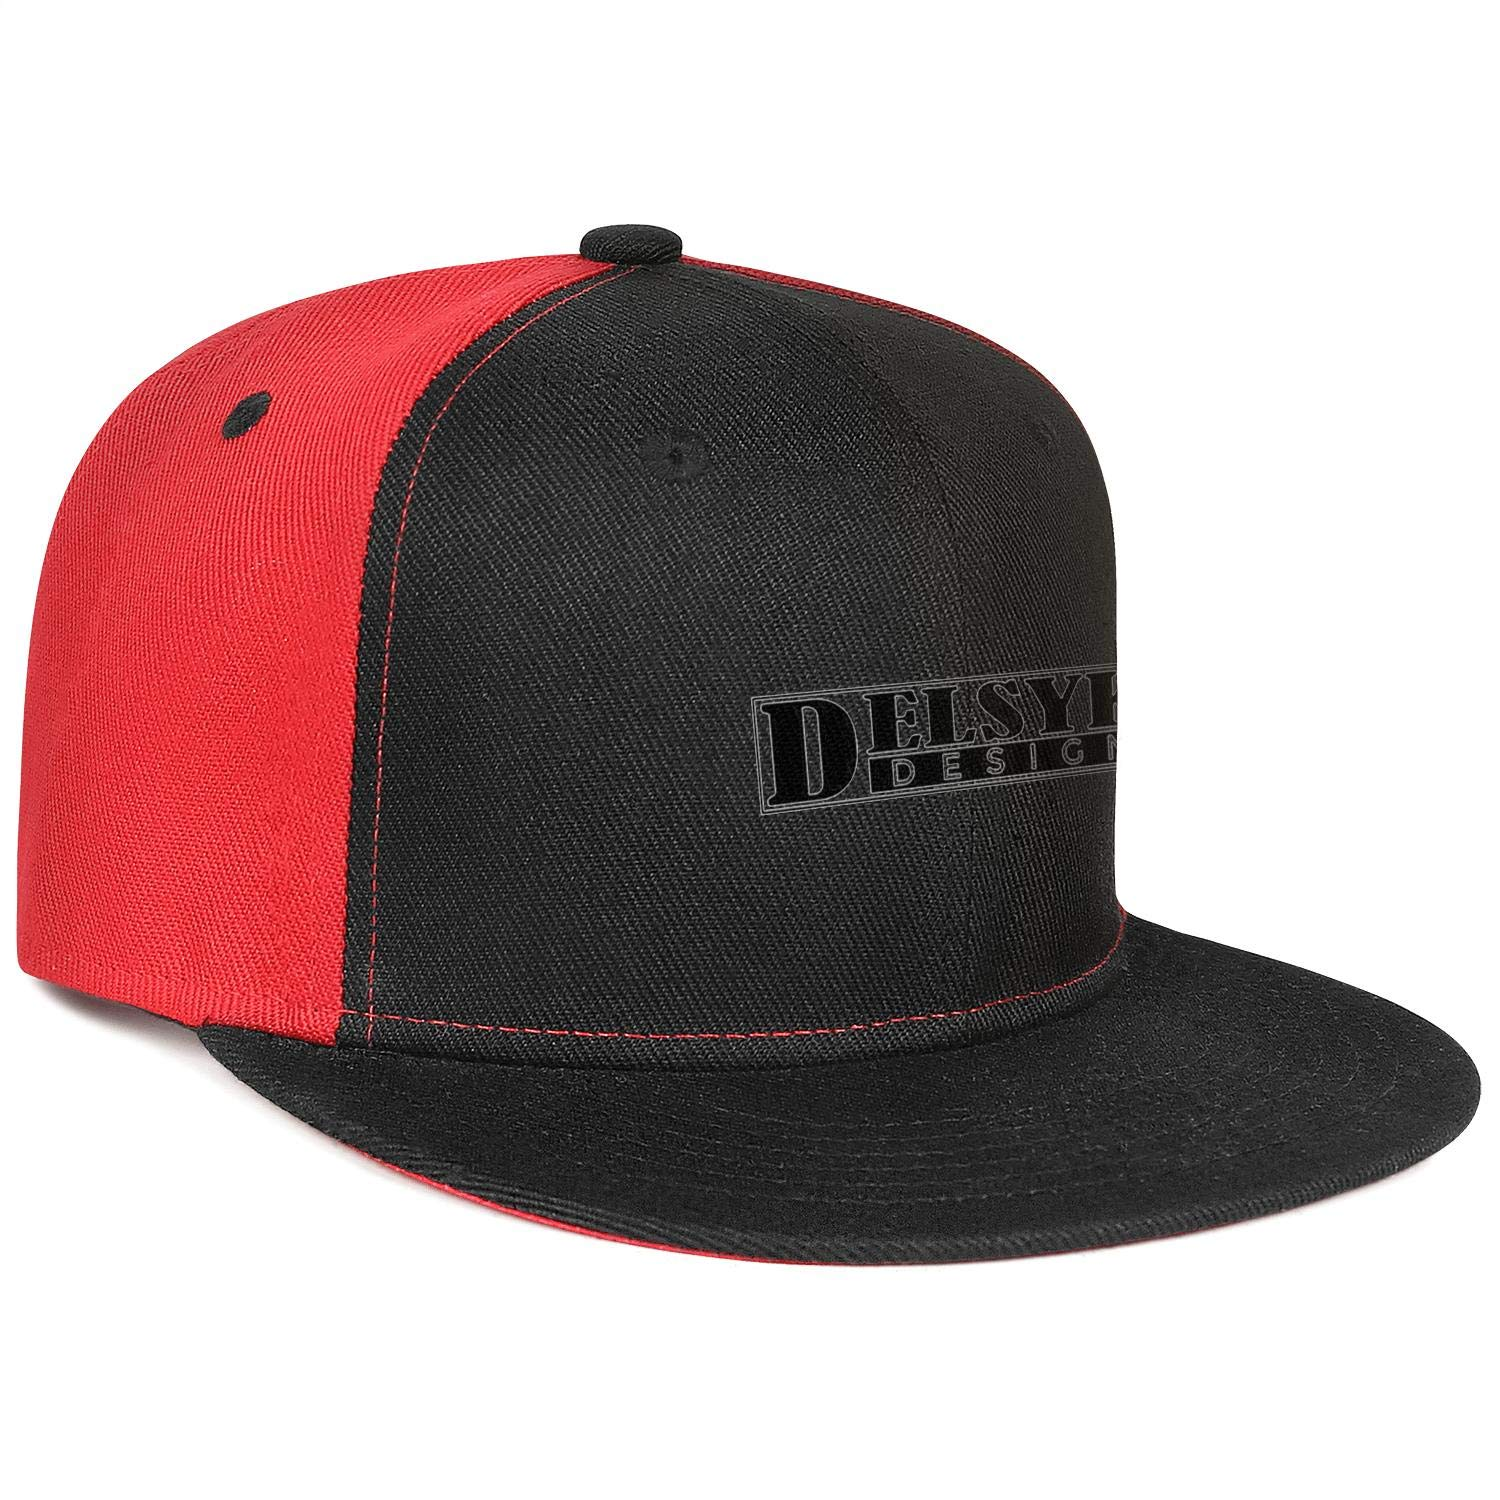 YYWCJ Trucker Hats Delsyk-Design-Logo Snapback Flat Bill Adjustable Hip Hop Cap